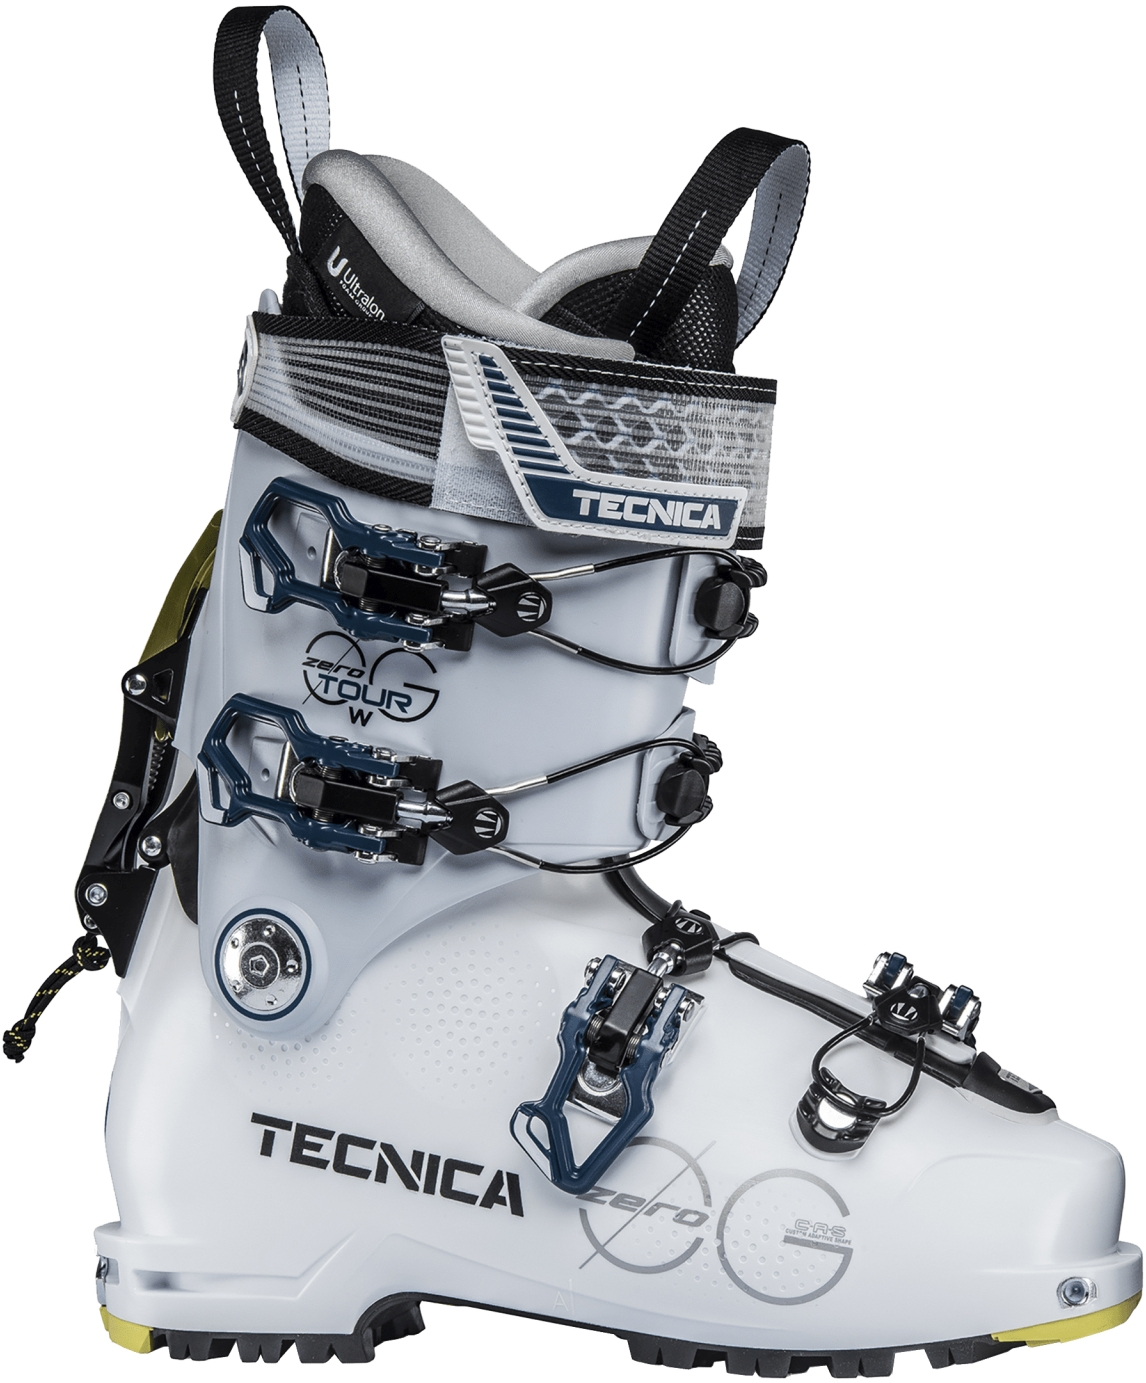 Tecnica Zero G Tour W - white/ice 235